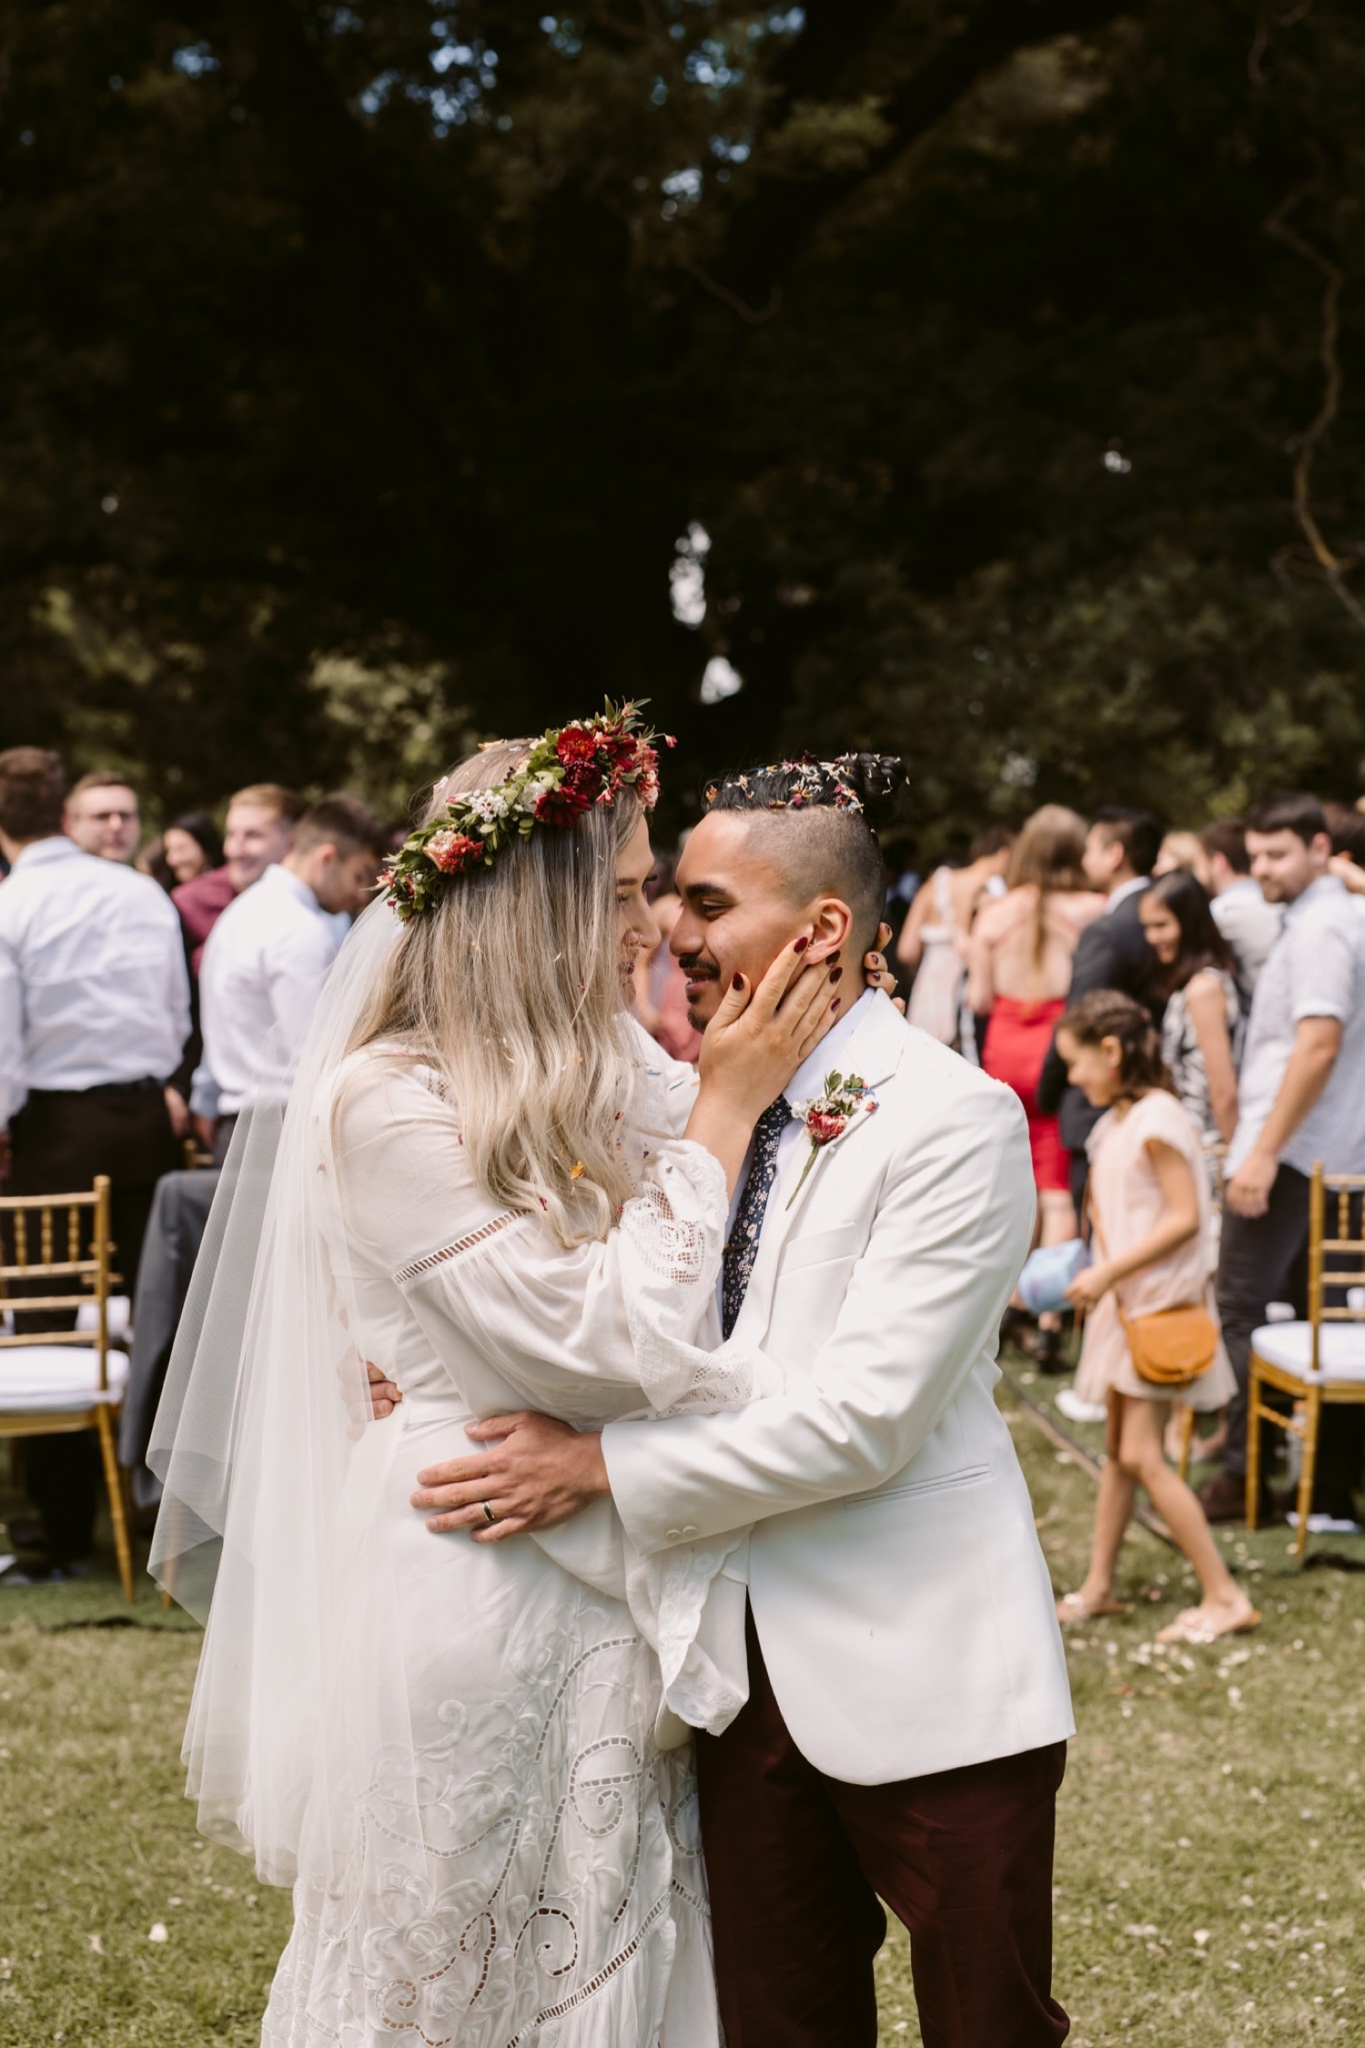 Gather and Tailor Melbourne Wedding Photography-152.jpg